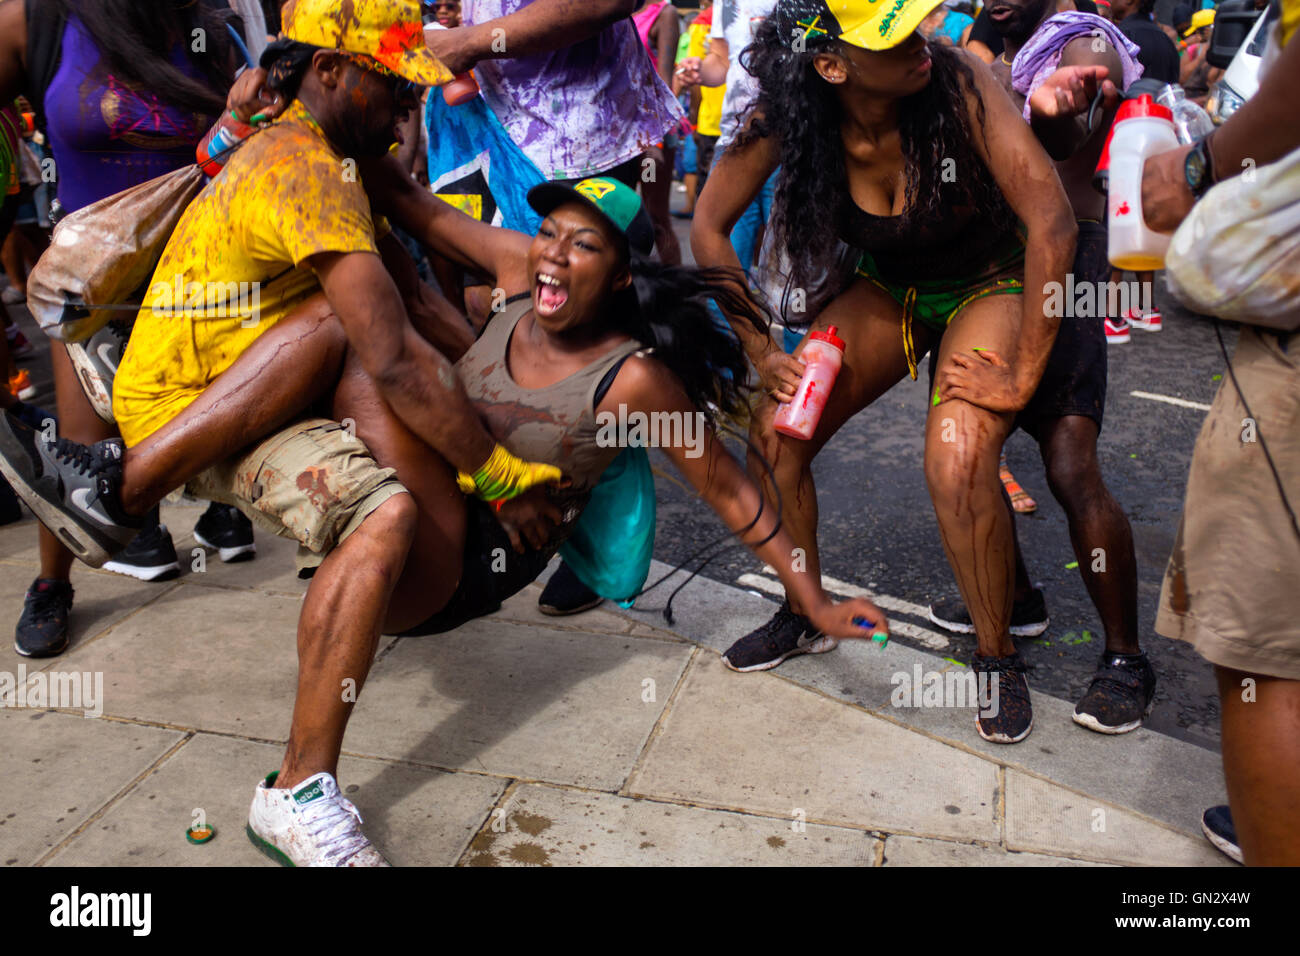 Revelers at the 50th Notting Hill Carnival, London, 2016. Credit:  wayne Tippetts/Alamy Live News Stock Photo